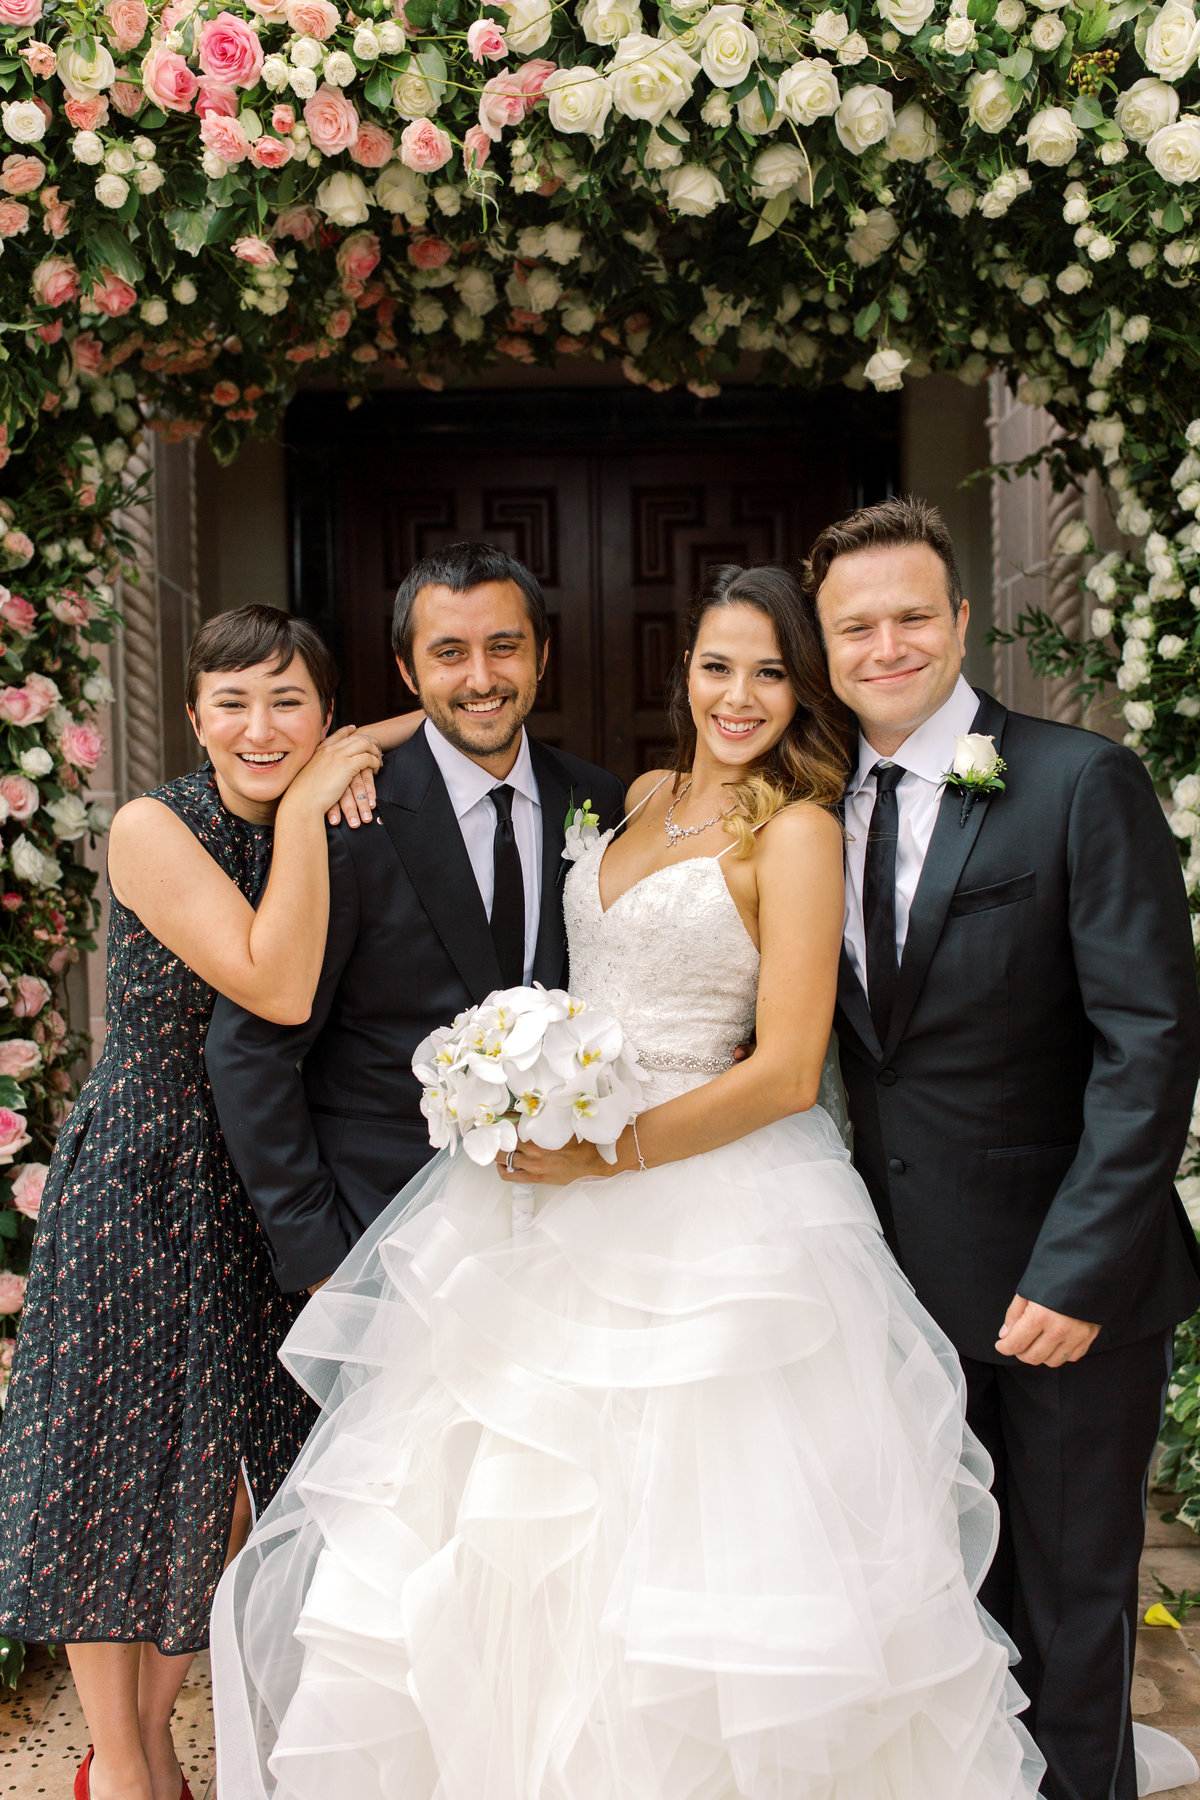 Maria Flores + Cody Williams San Francisco Wedding Sneak Peeks | Cassie Valente Photography 0025